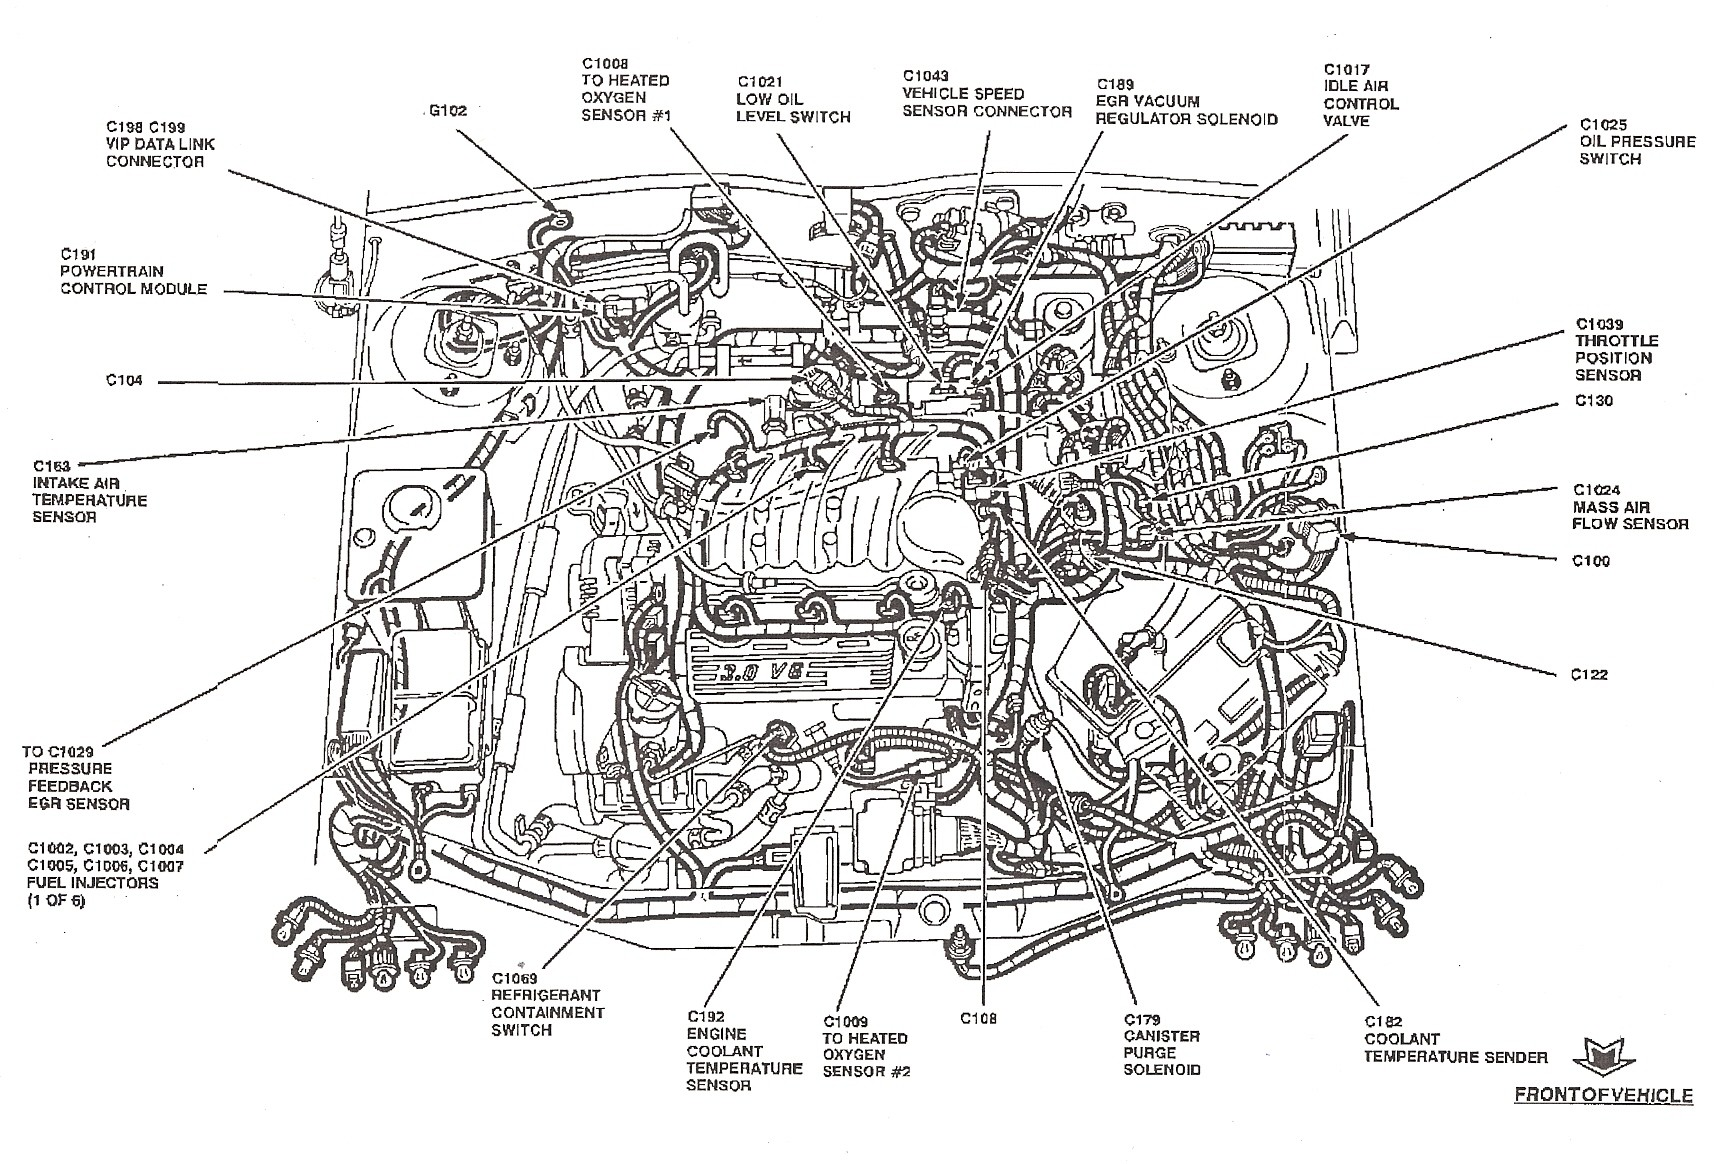 hight resolution of ford f250 parts diagram zetec engine diagram vacuum wiring wiring diagrams instructions of ford f250 parts